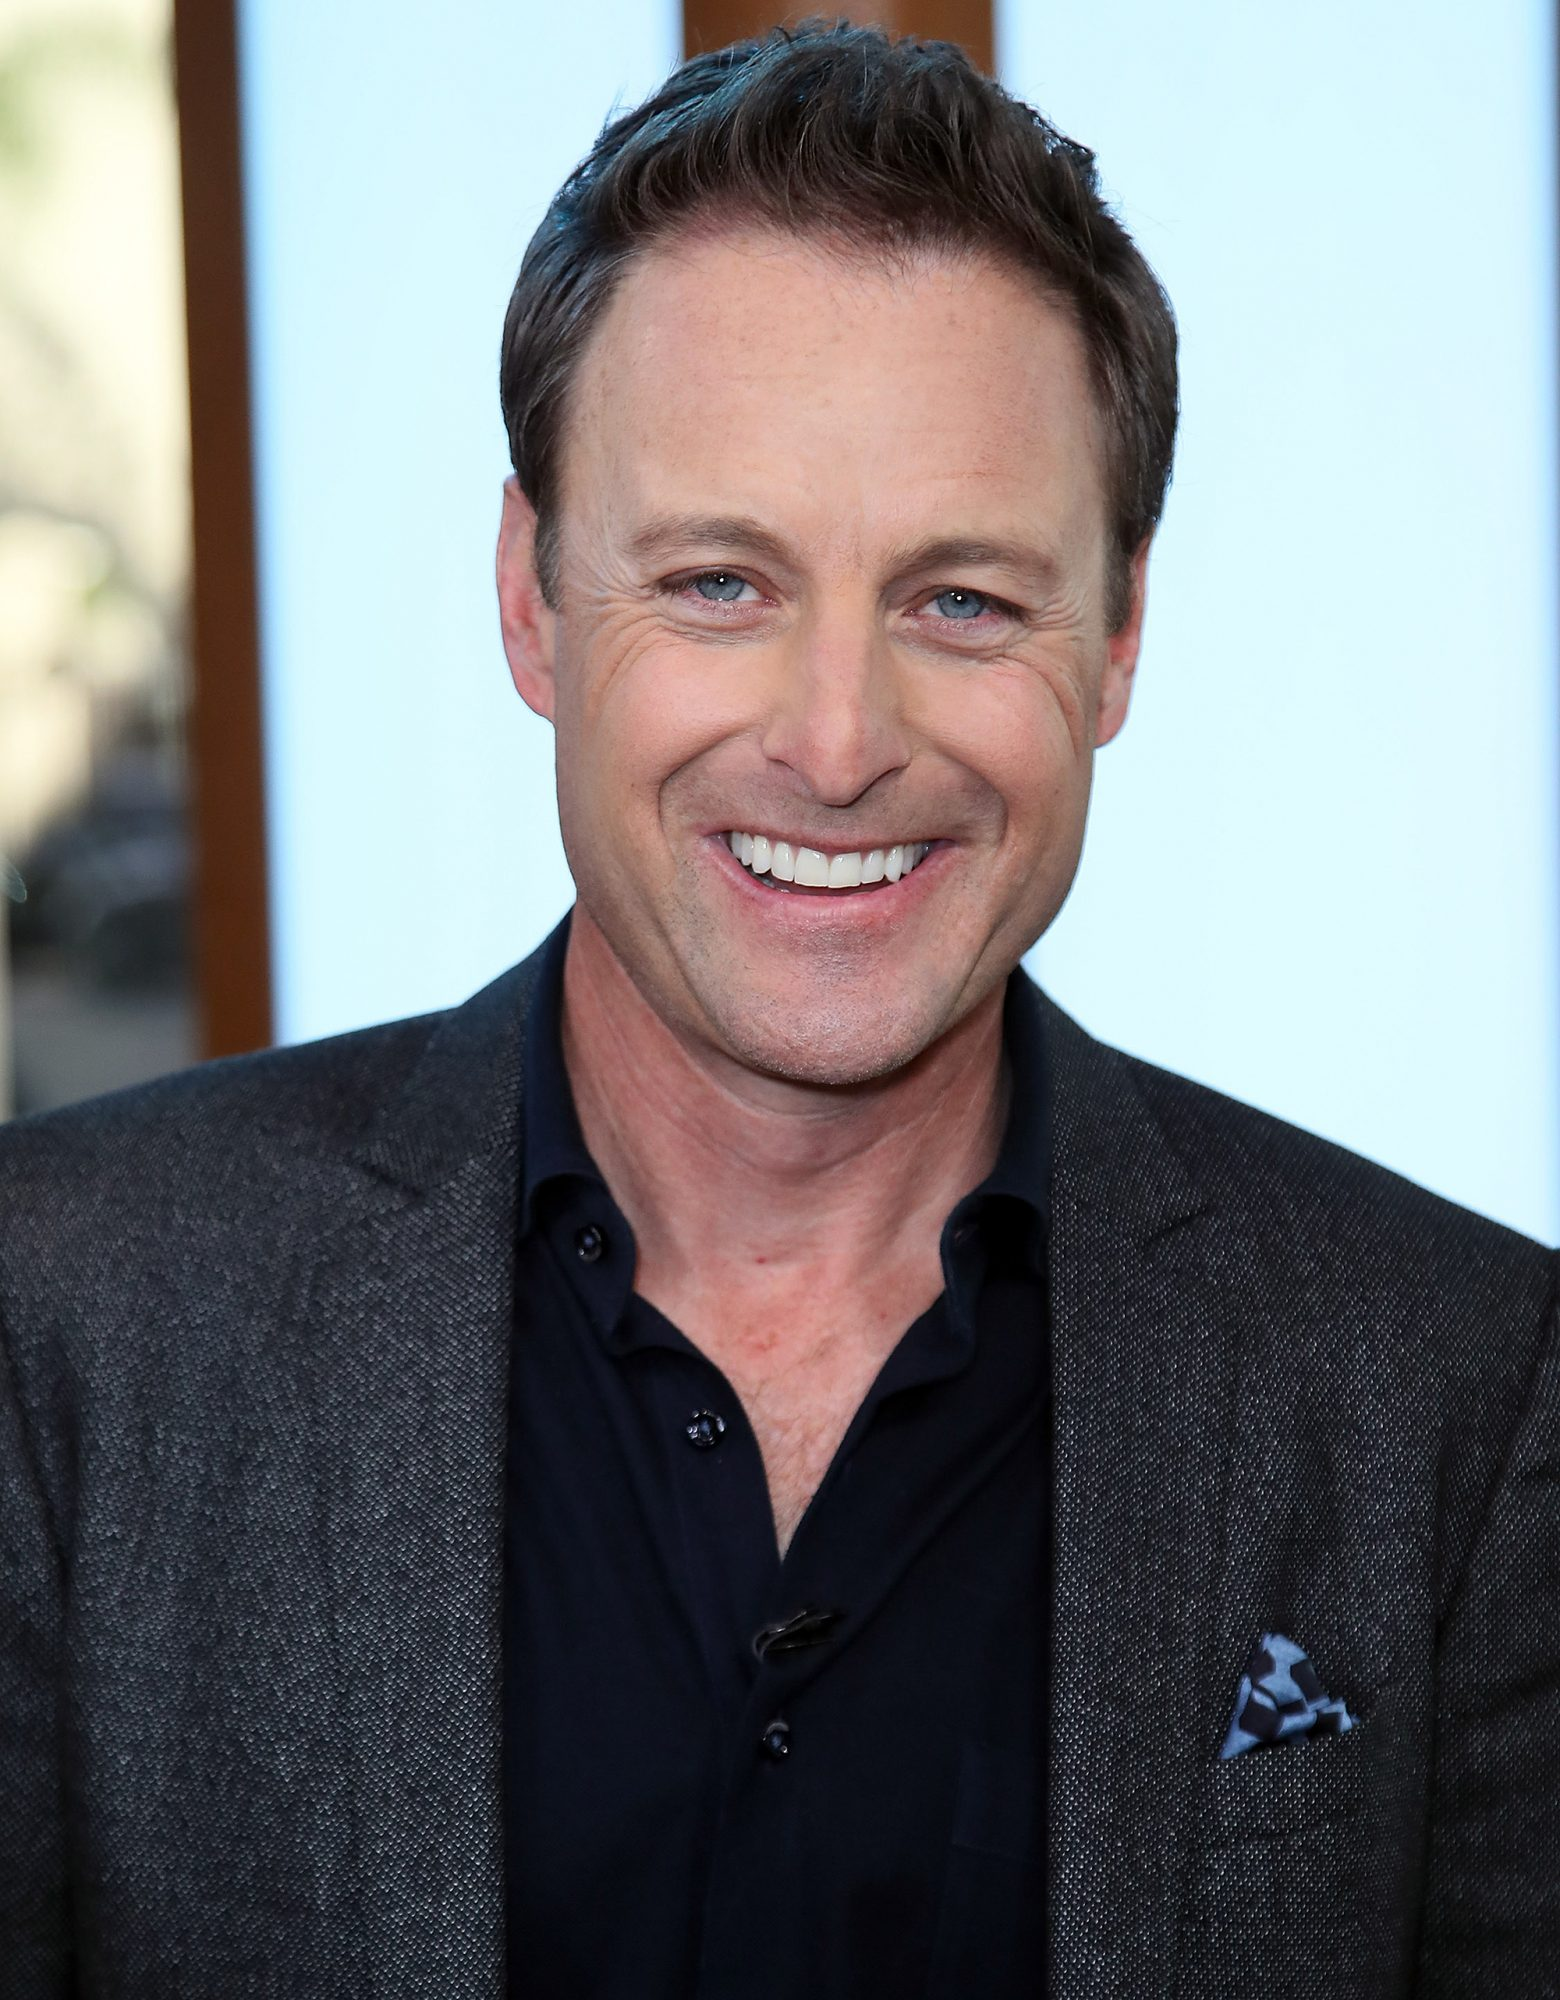 chris-harrison-bachelor.jpg